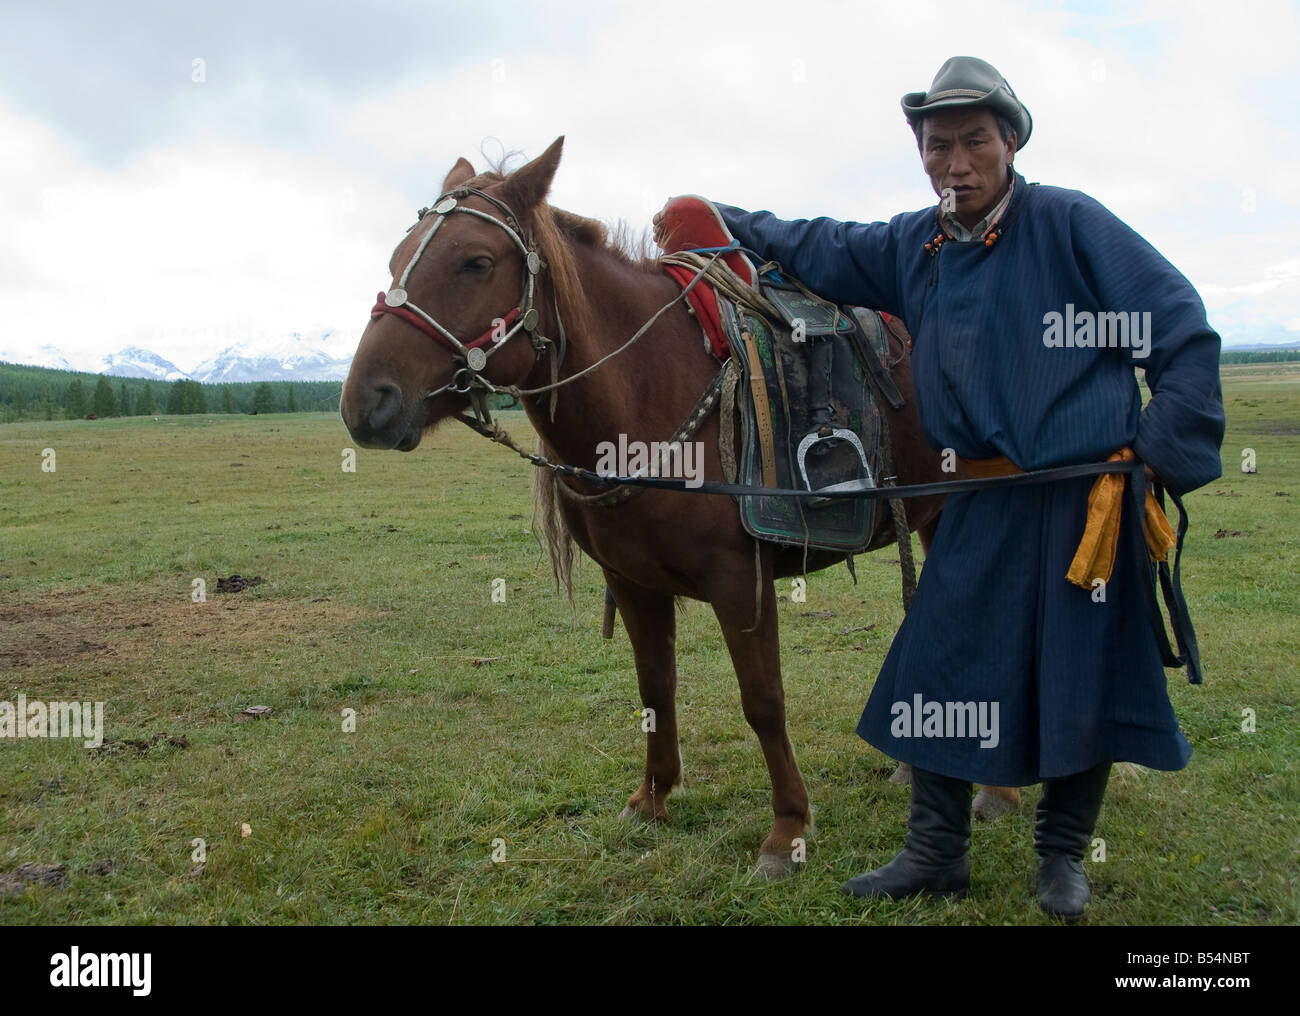 Nomad with his horse in Northern Mongolia - Stock Image